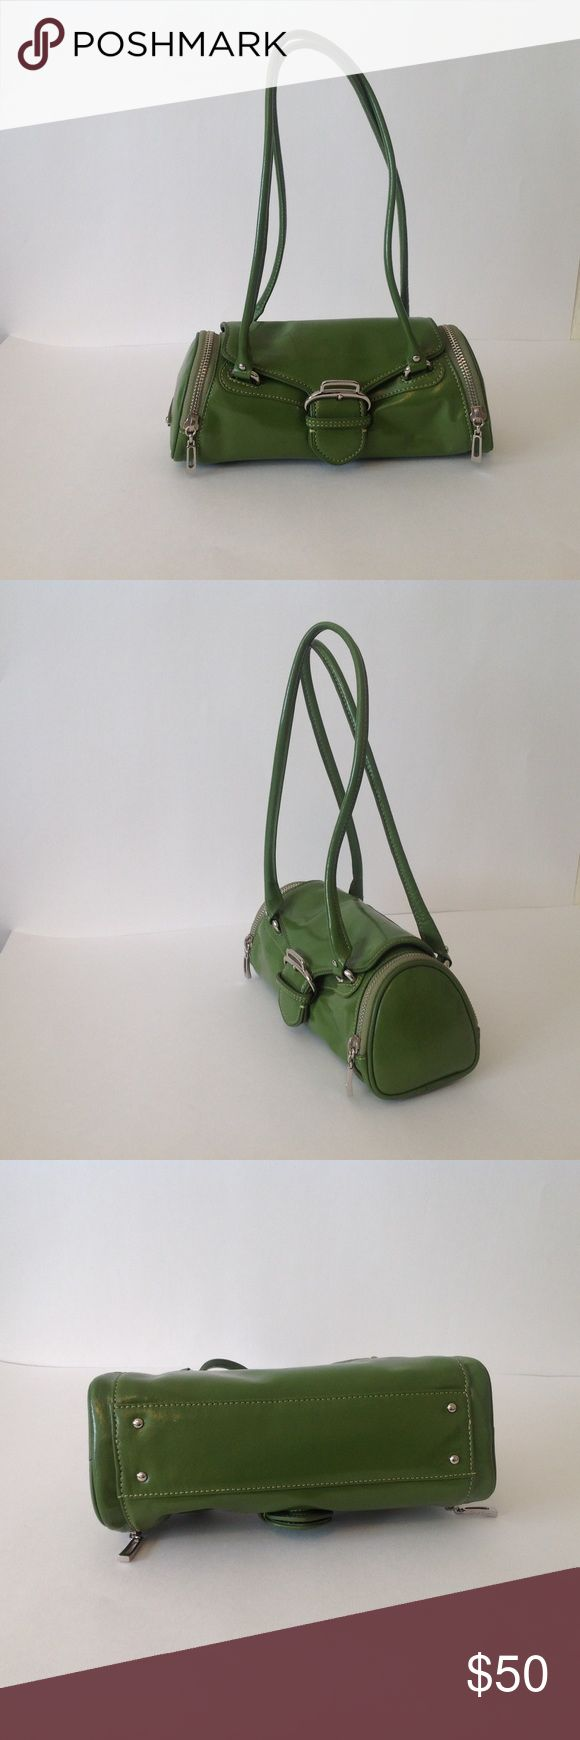 Cole Haan Kelly Green Satchel - Limited Edition Stylish, eye-catching kelly green Cole Haan leather handbag. Only worn twice! In excellent condition - no wear and tear. Authentic Cole Haan, NOT made for outlet stores. Fits over the shoulder. This bag adds a fun pop of color to any outfit. No trades. Cole Haan Bags Shoulder Bags